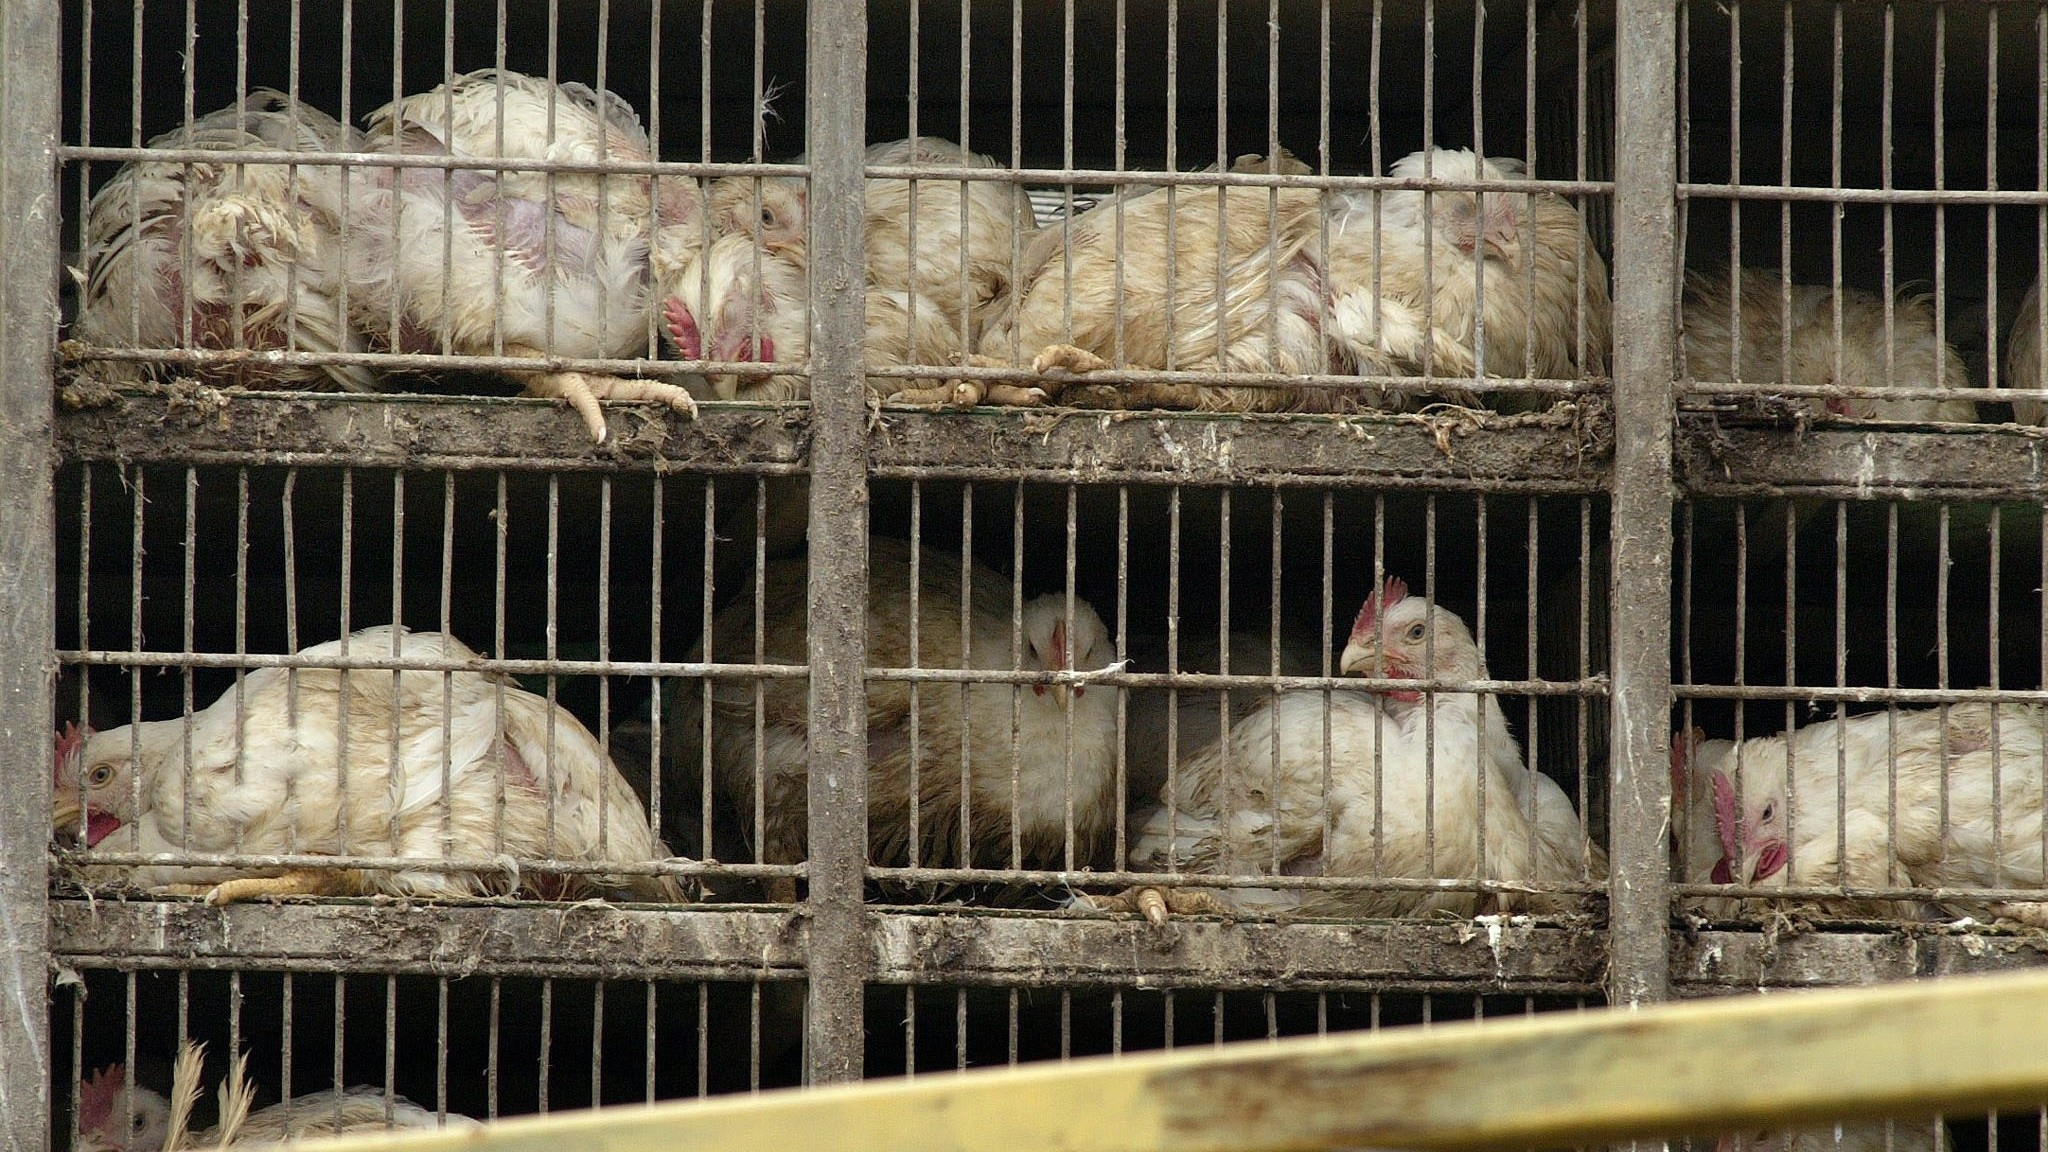 Opponents of Massachusetts Ballot Measure Say Cage-Free Eggs Are War on the Poor